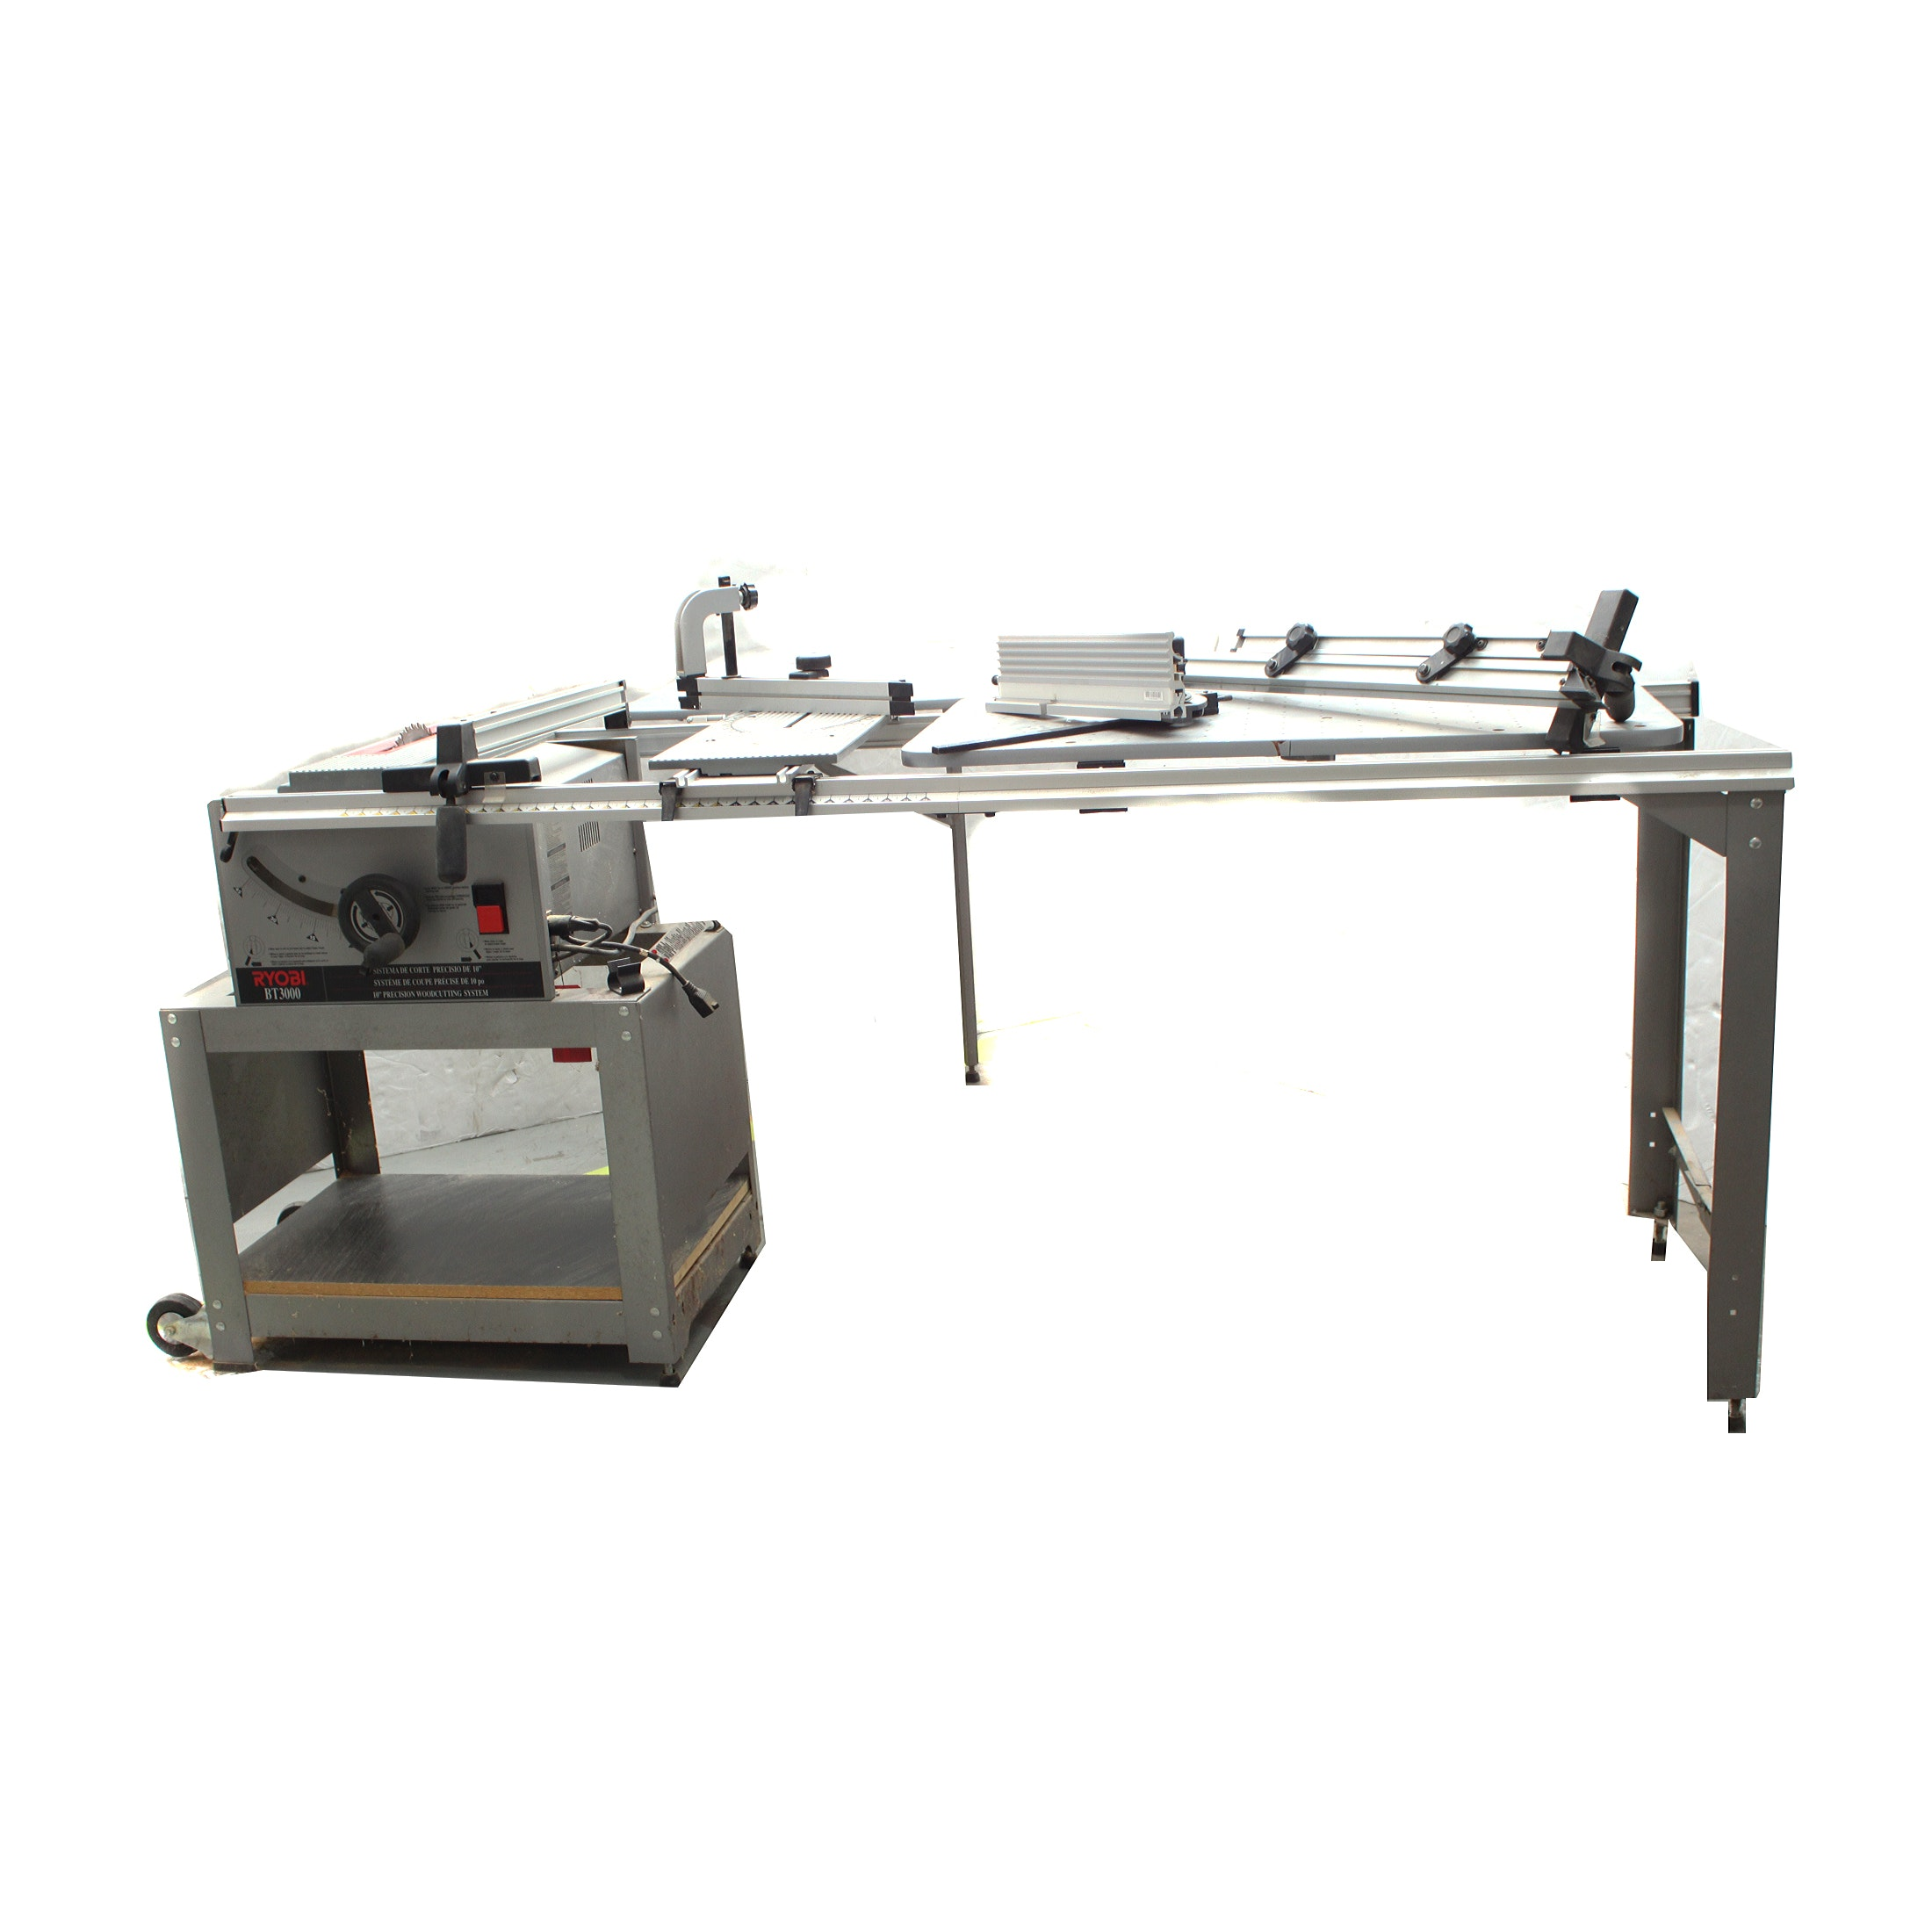 Ryobi BT300 Table Saw